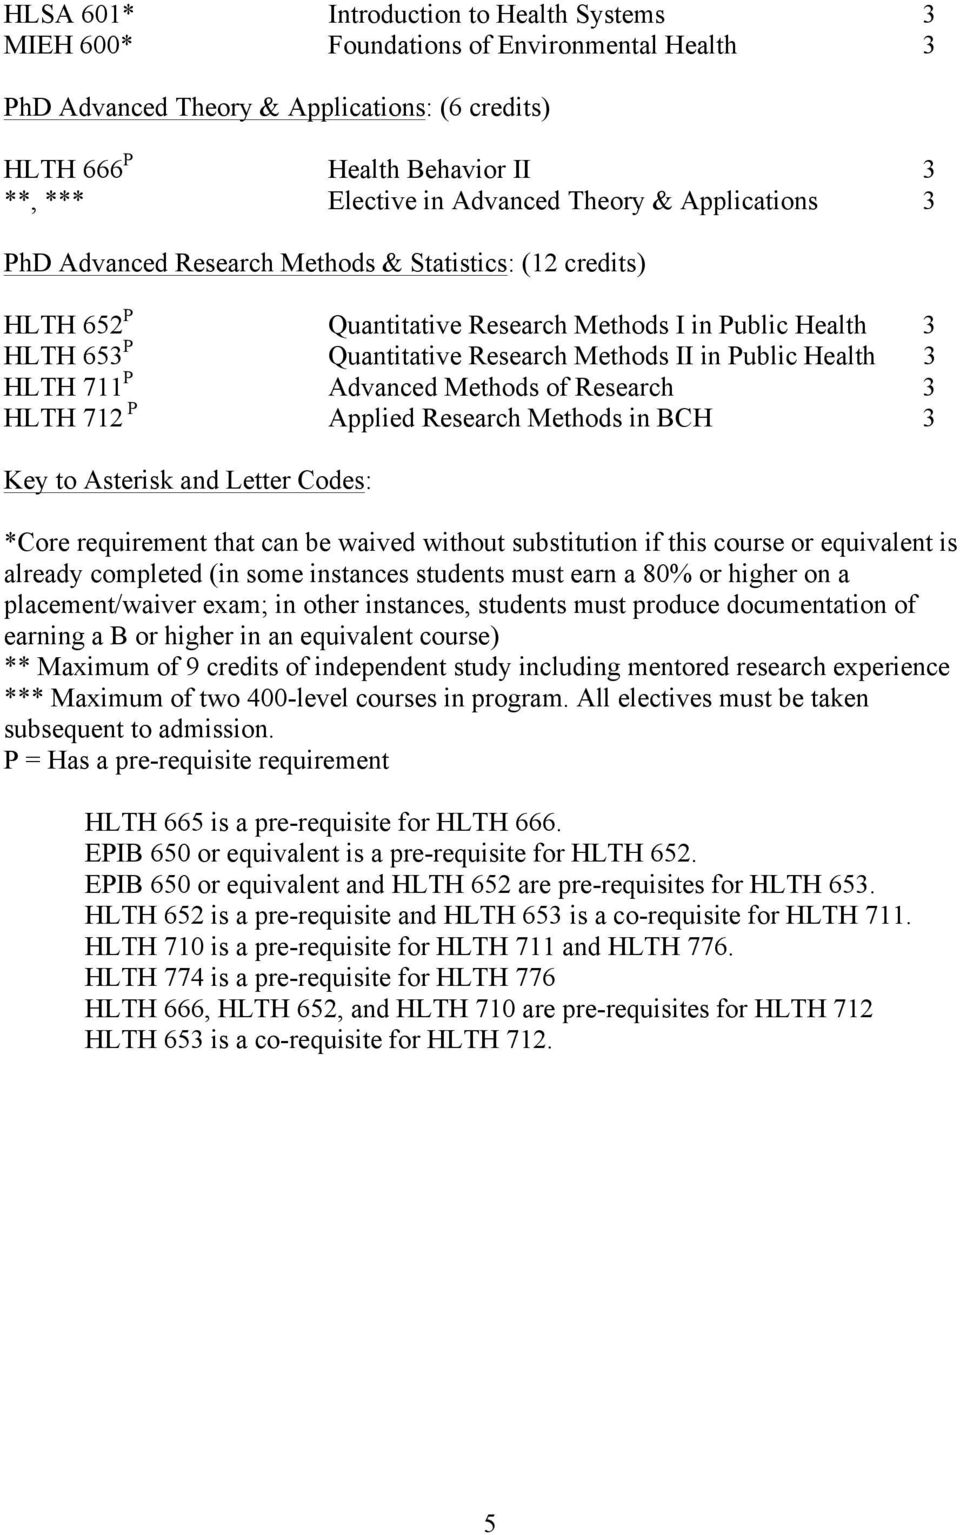 Health 3 HLTH 711 P Advanced Methods of Research 3 HLTH 712 P Applied Research Methods in BCH 3 Key to Asterisk and Letter Codes: *Core requirement that can be waived without substitution if this